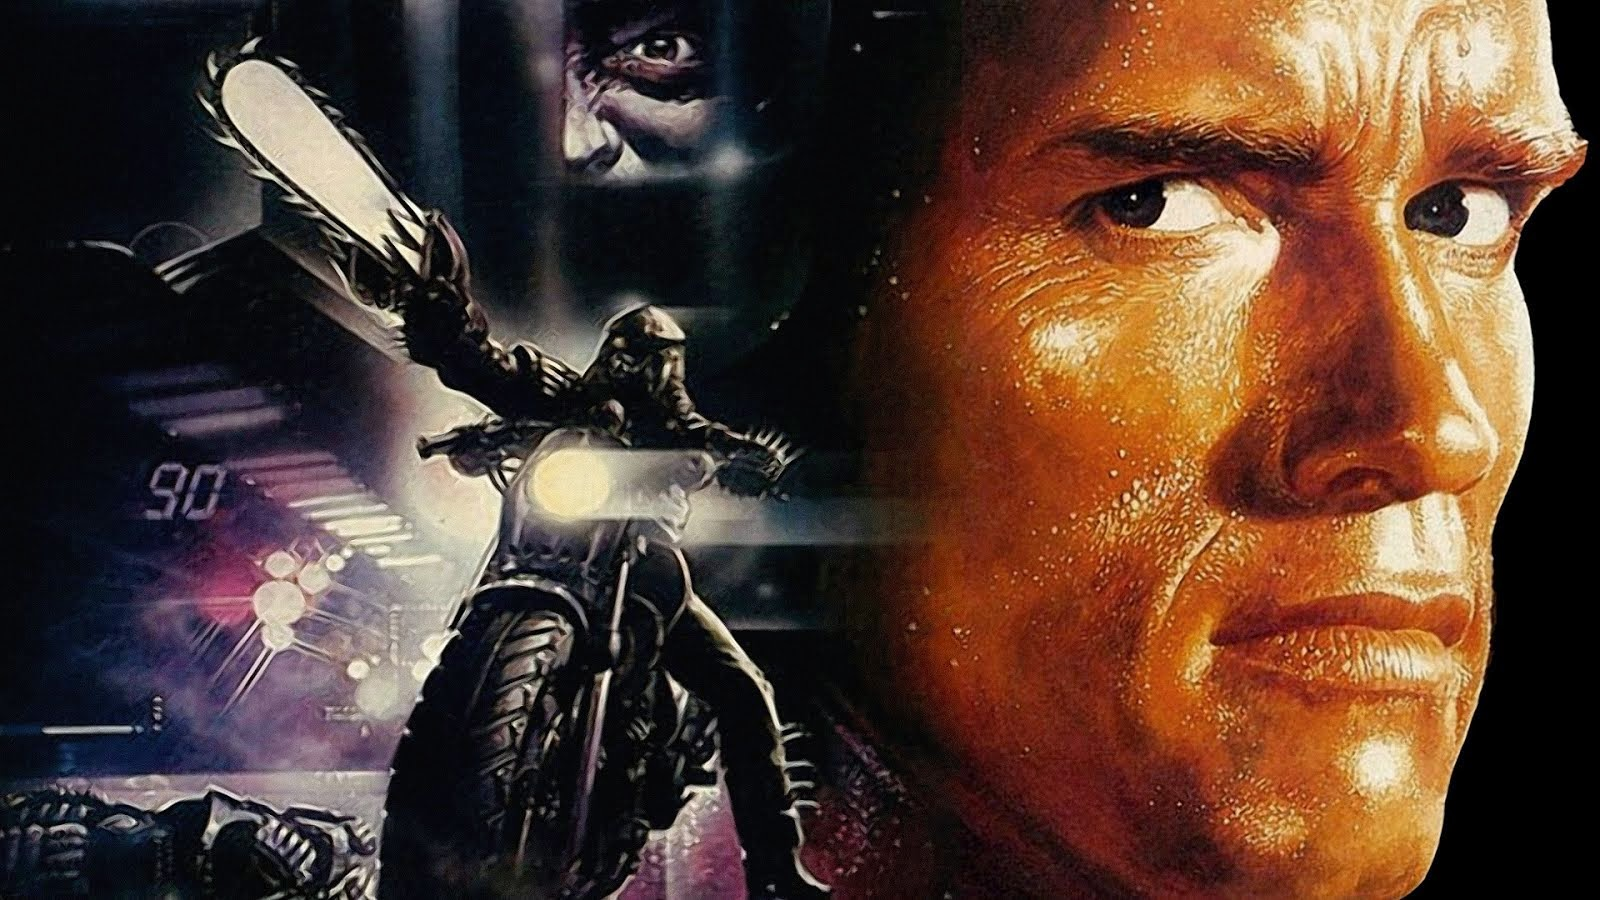 arnold schwarzenegger hd wallpapers download free high